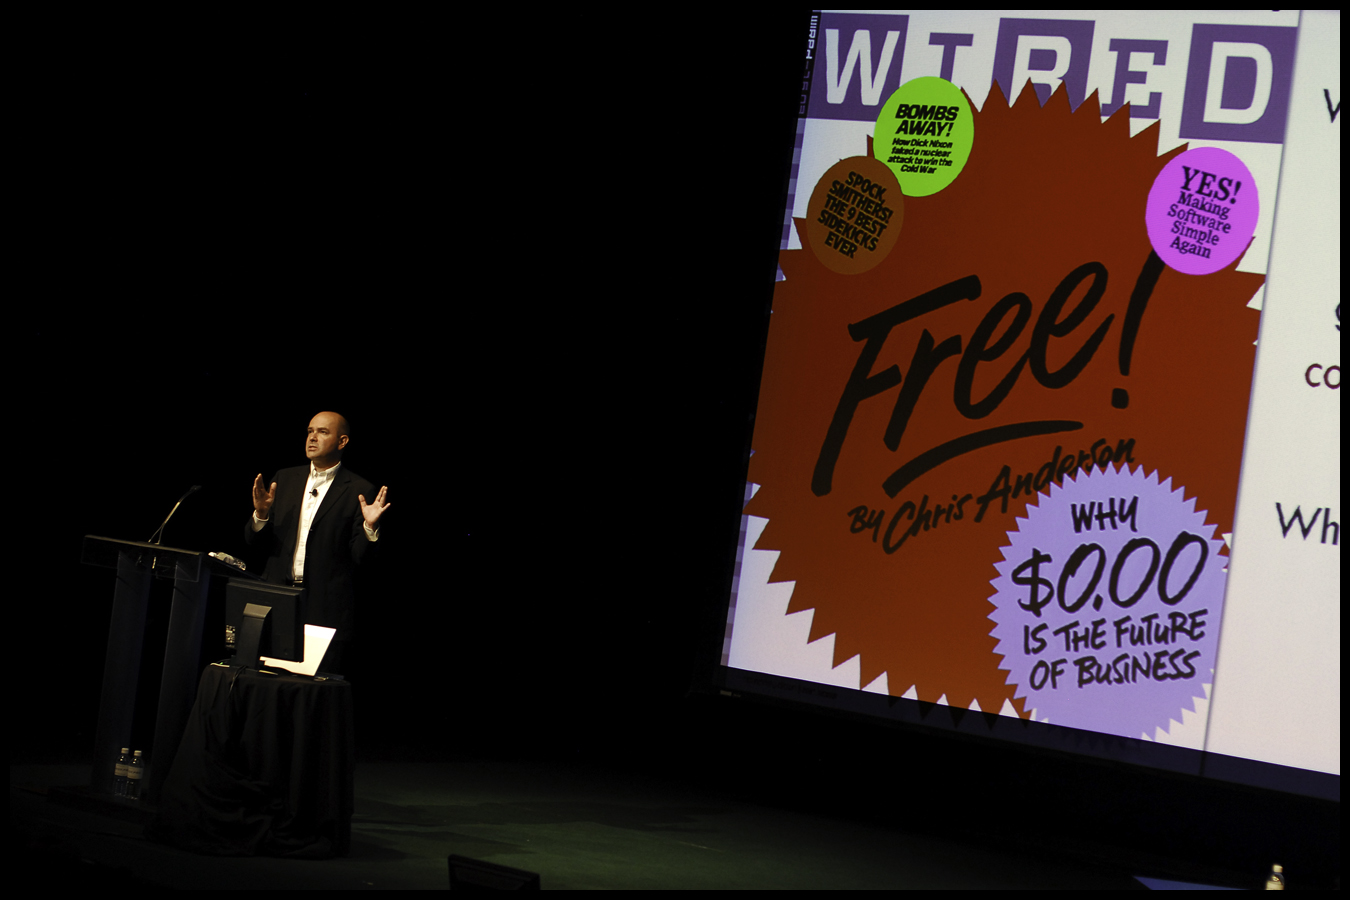 Chris Anderson's book FREE might just cost you